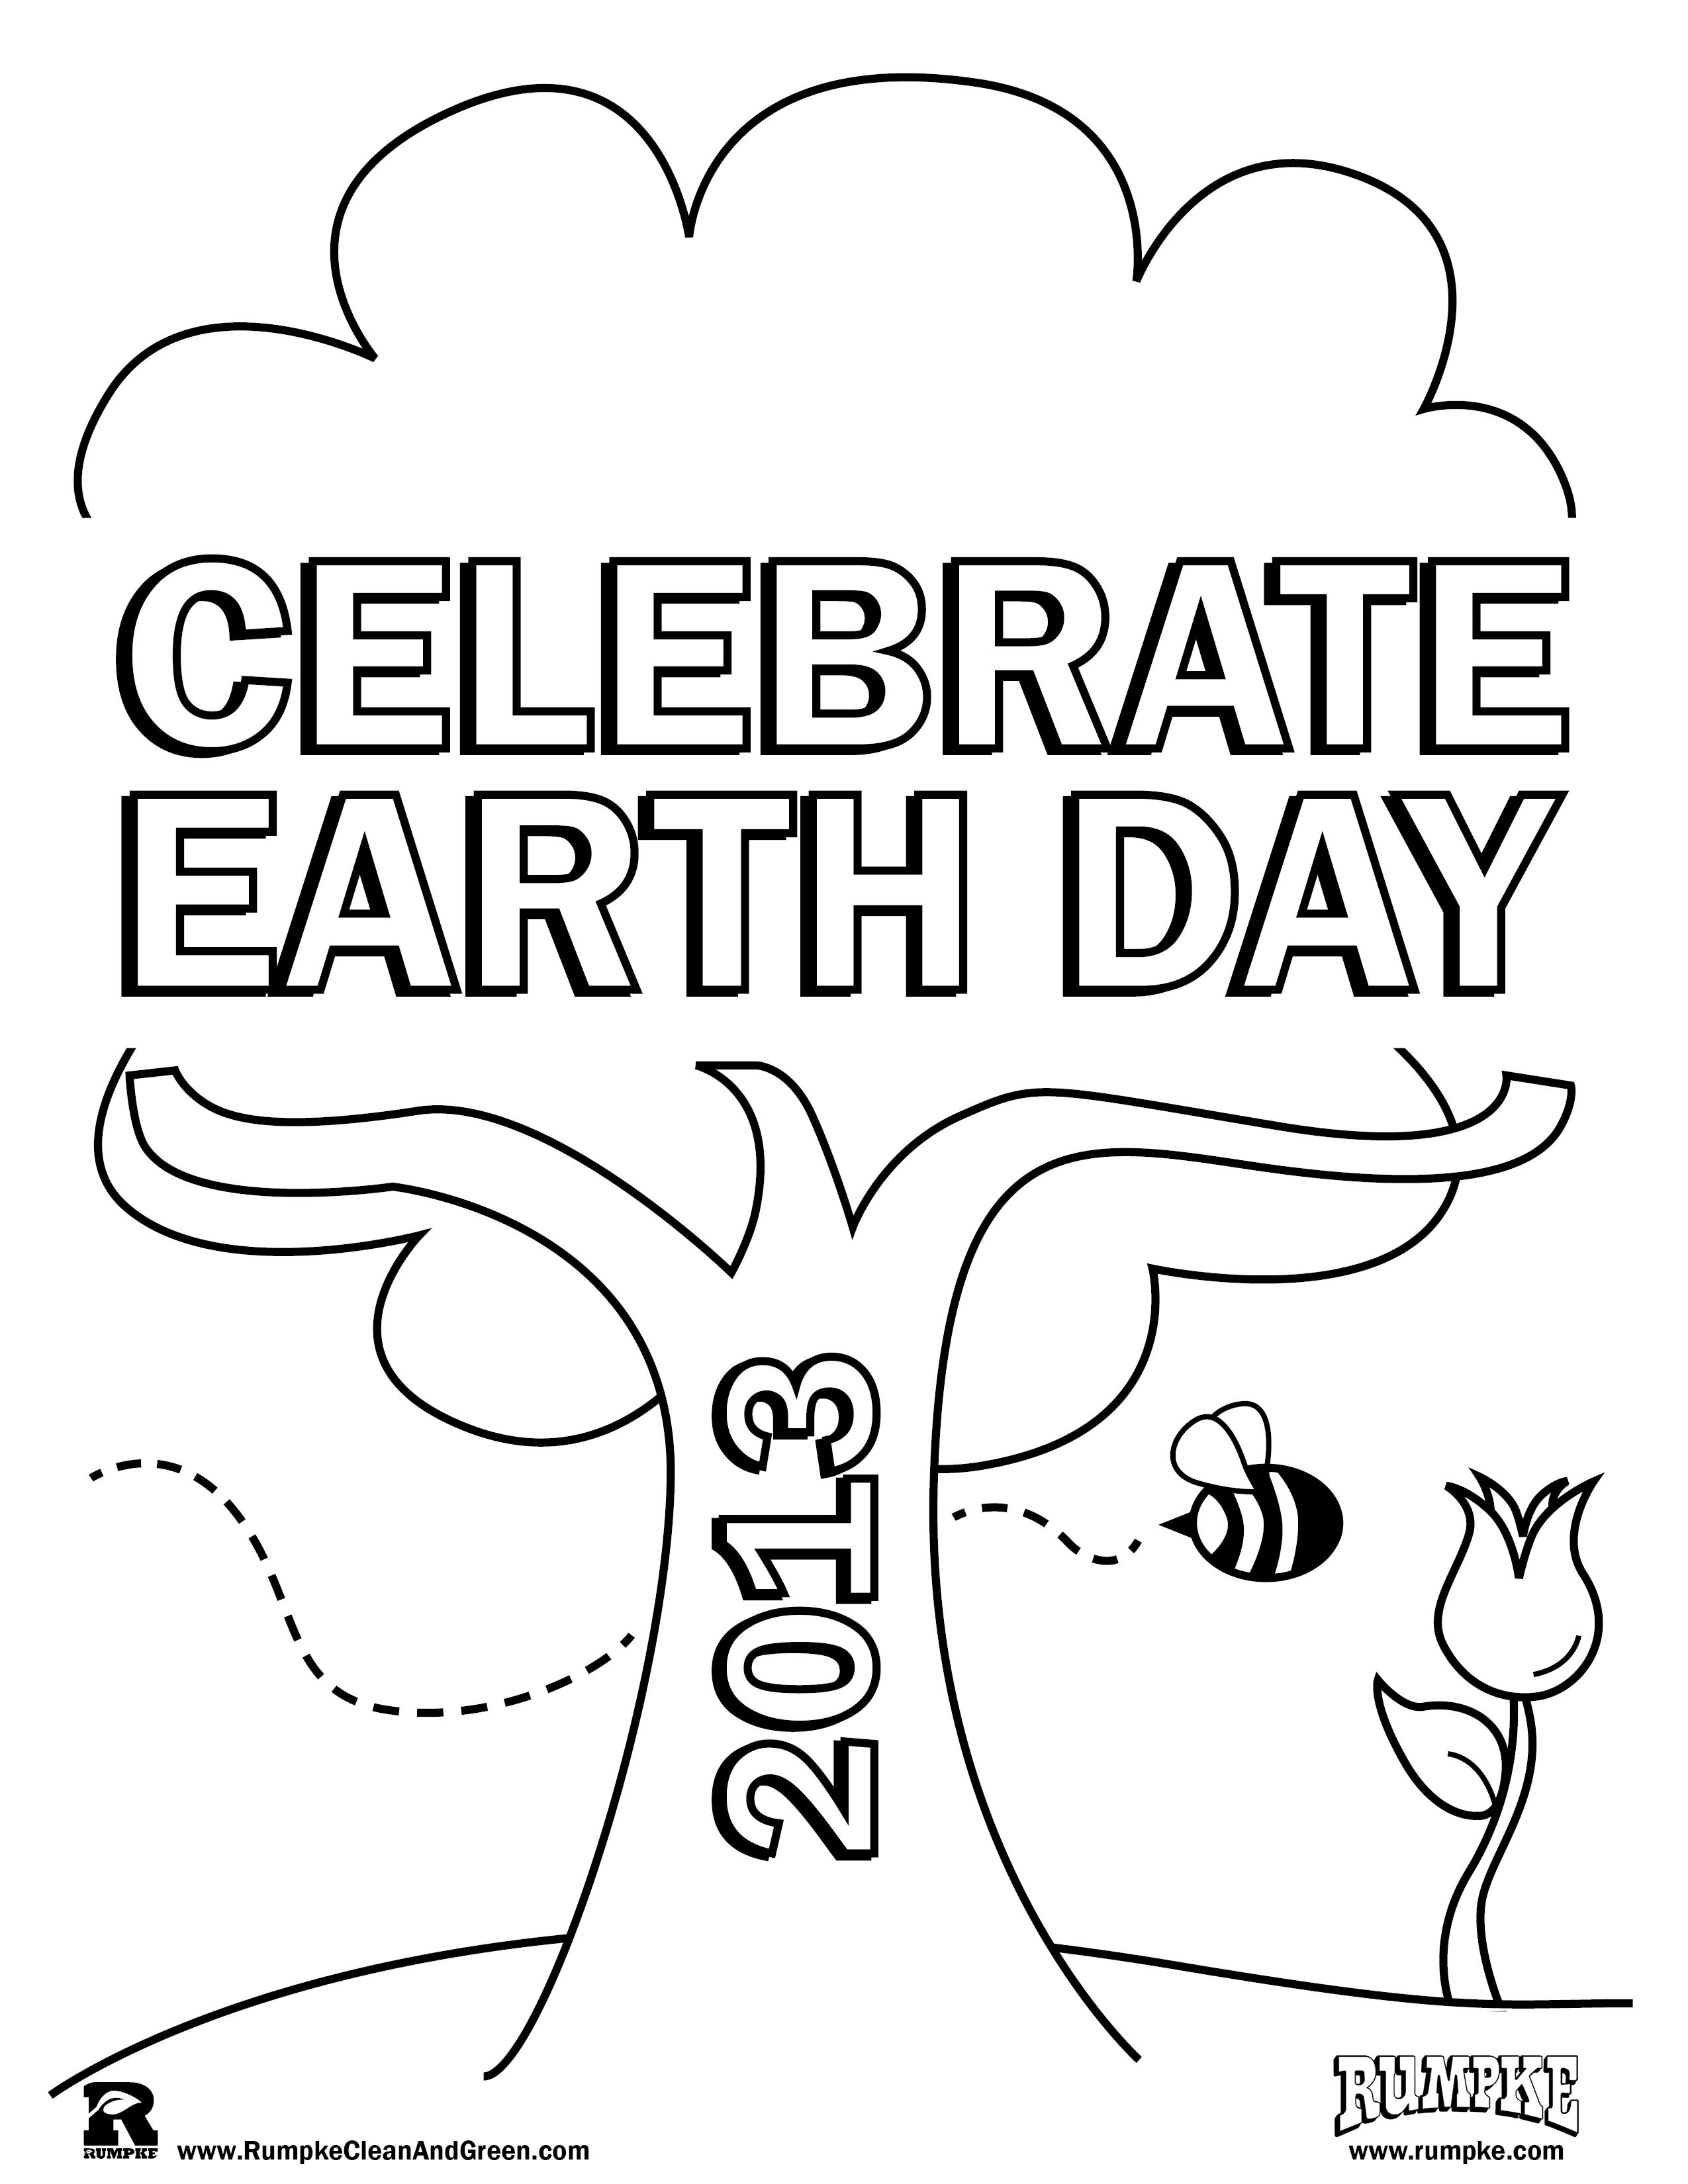 Celebrate Earth Day Free Printable Coloring Sheet